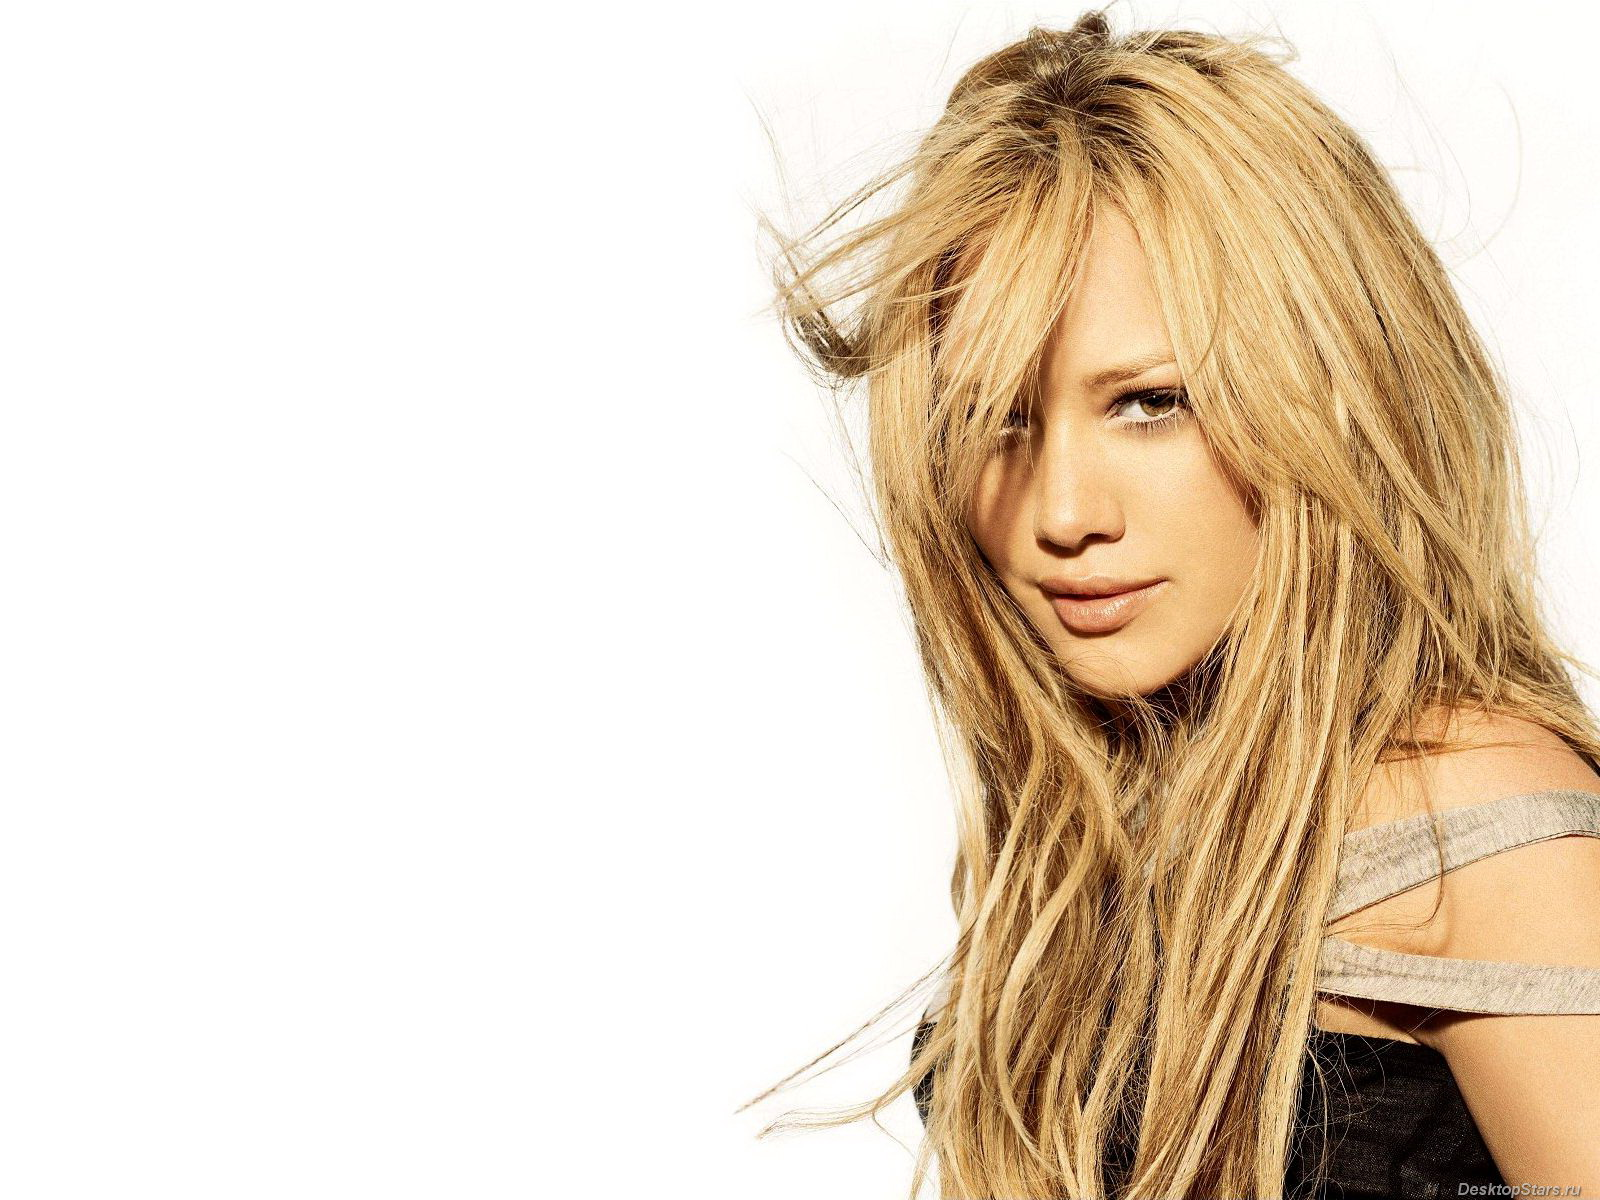 cute hilary duff nice lovely beauty hair style look laptop background hd desktop images